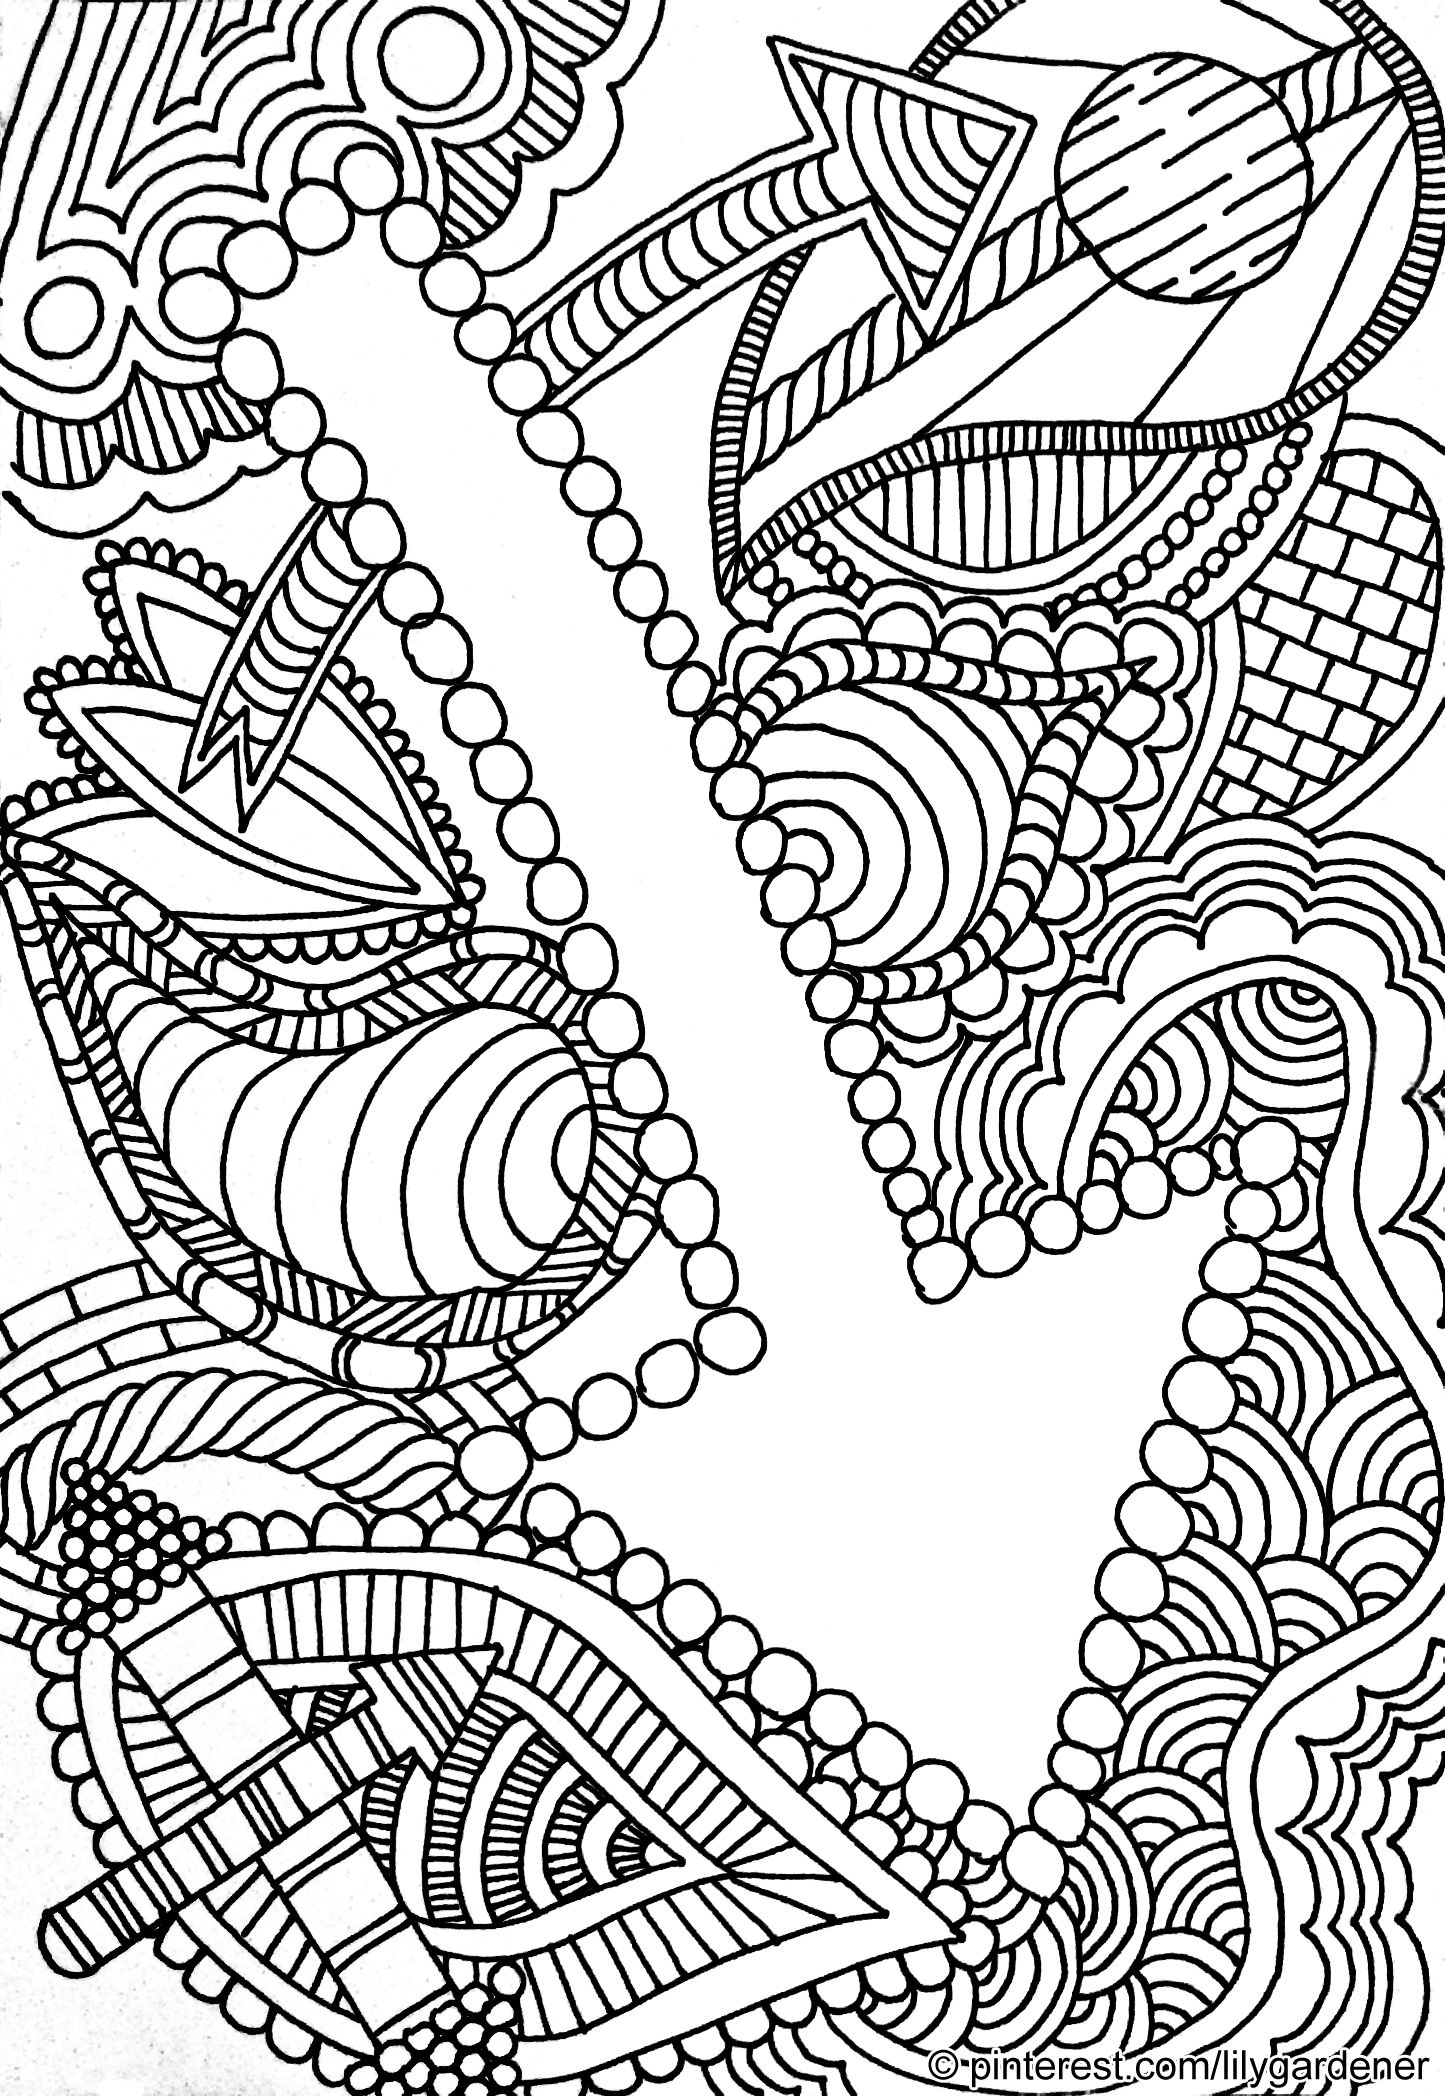 abstract coloring pages to print get this printable abstract coloring pages online 42671 to print abstract coloring pages